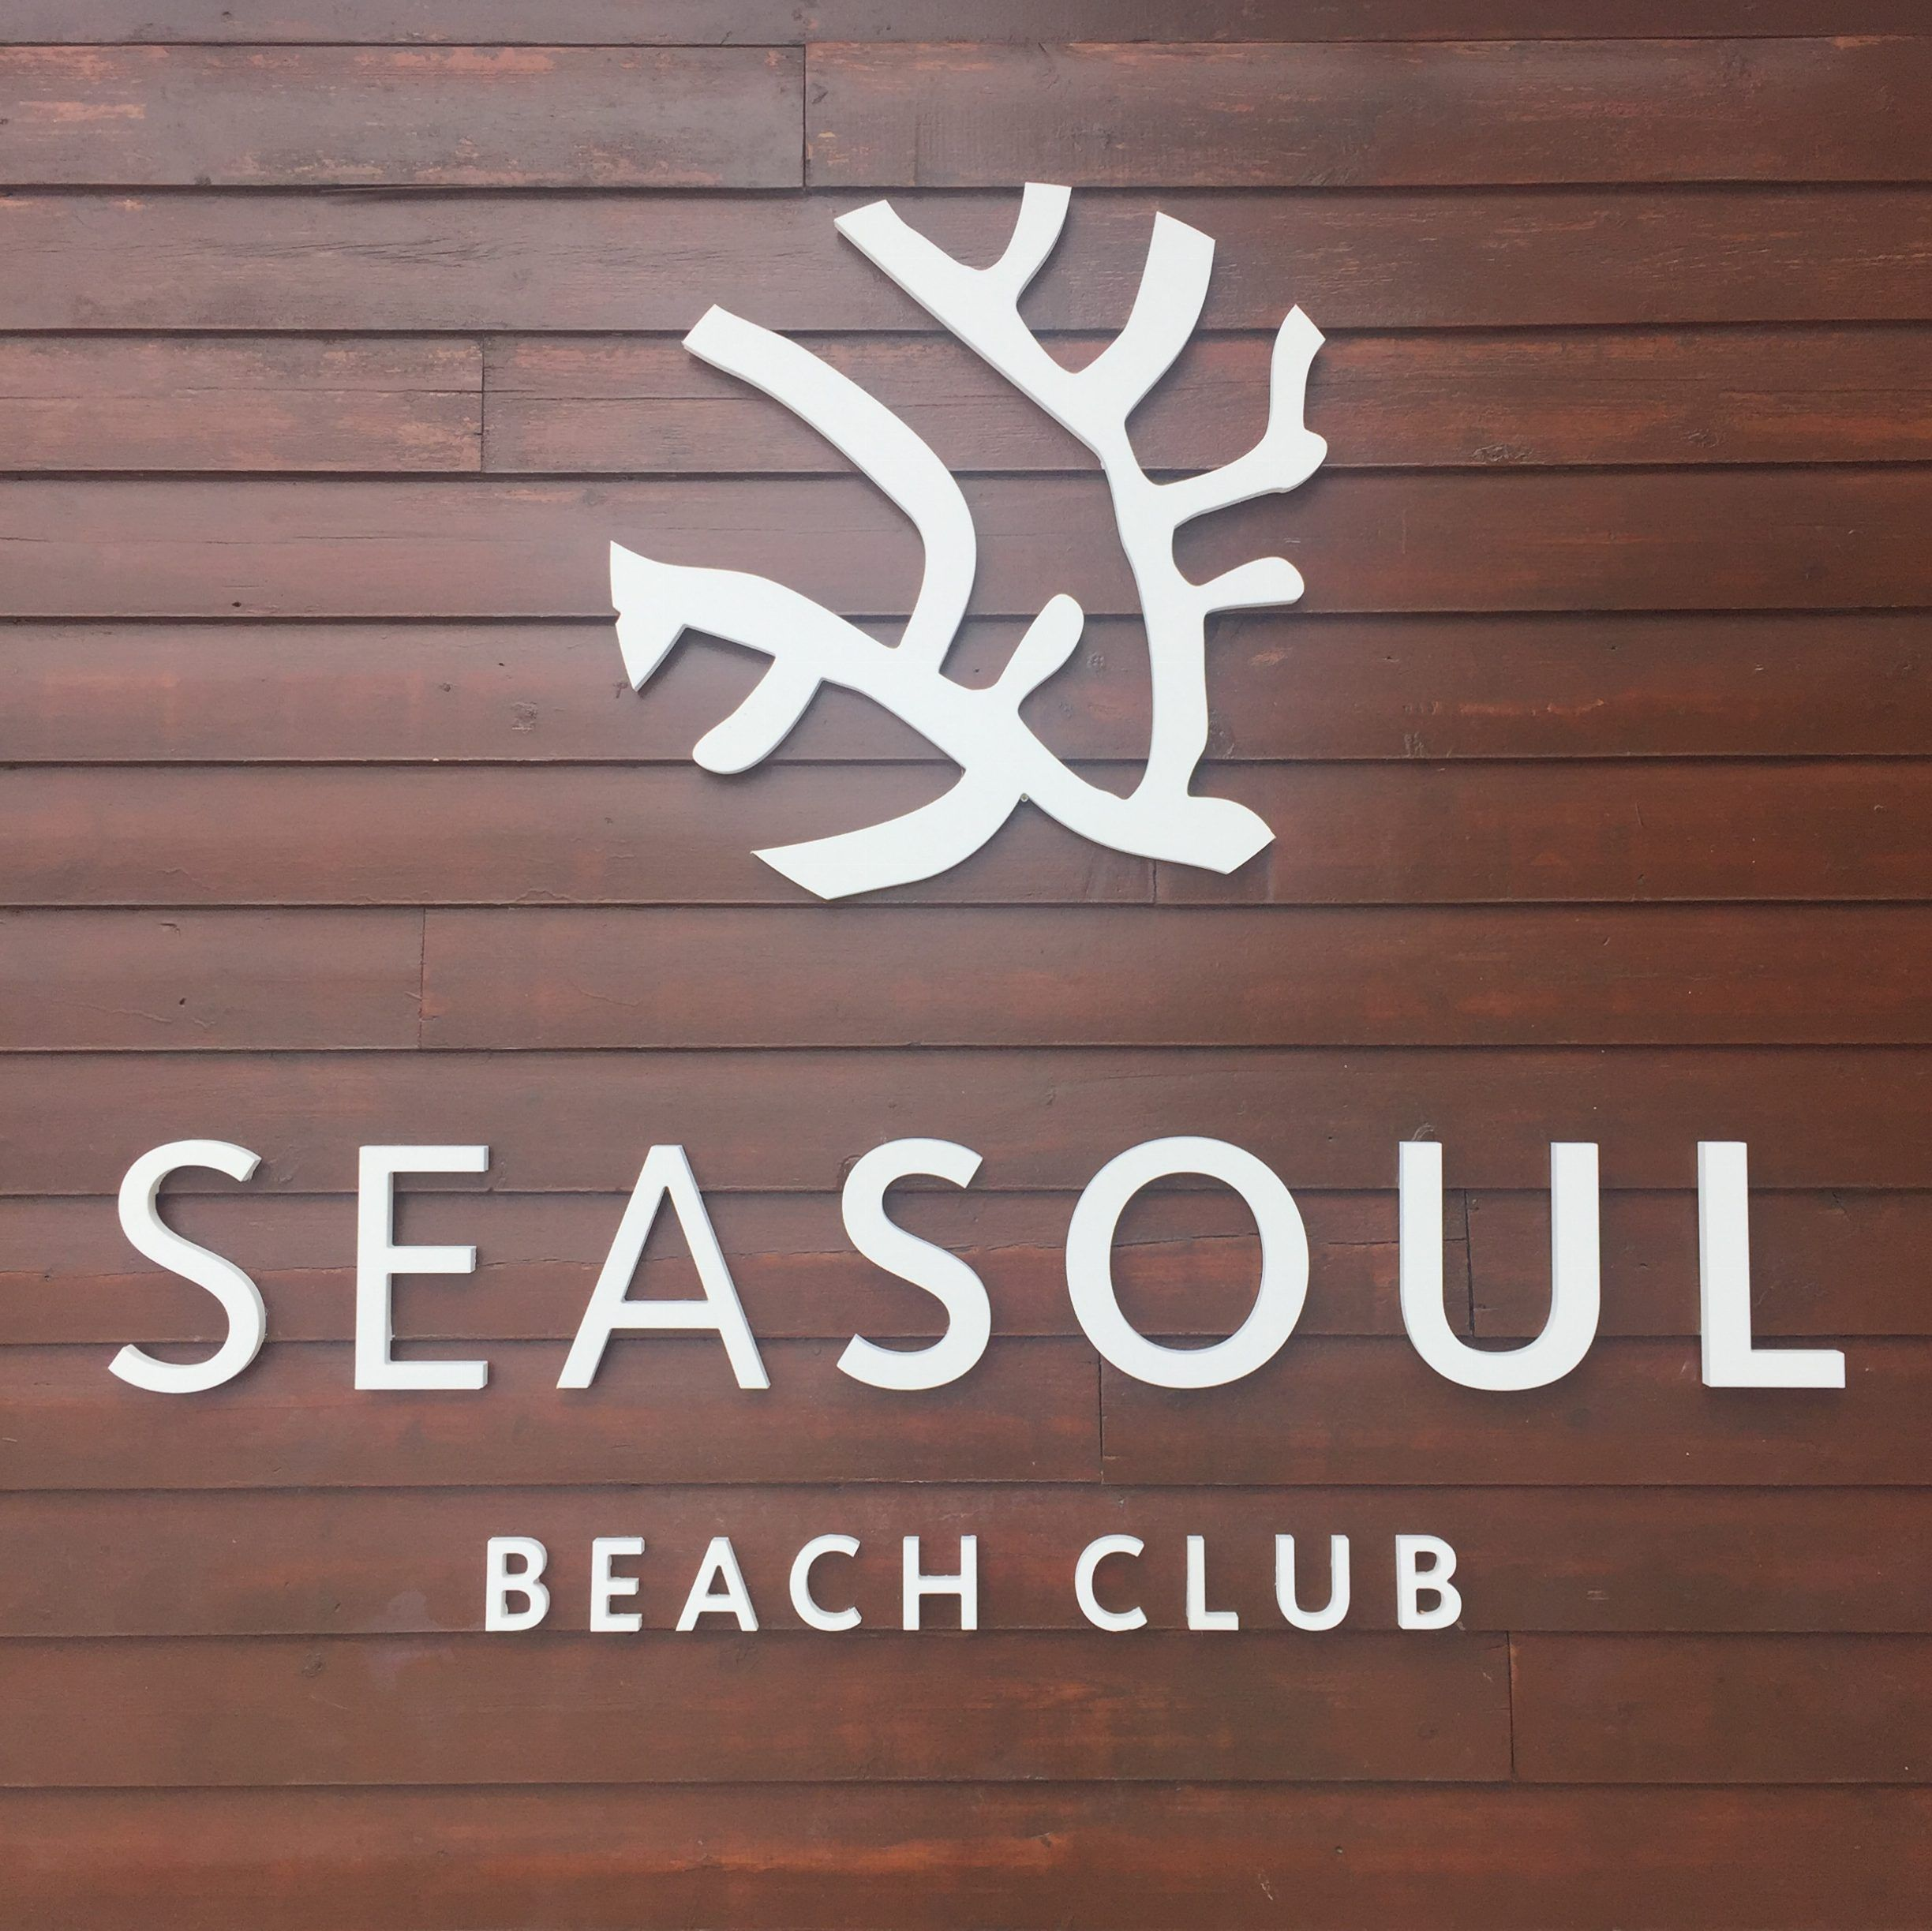 Seasoul Beach de Ciudad Blanca, un plan perfecto de domingo